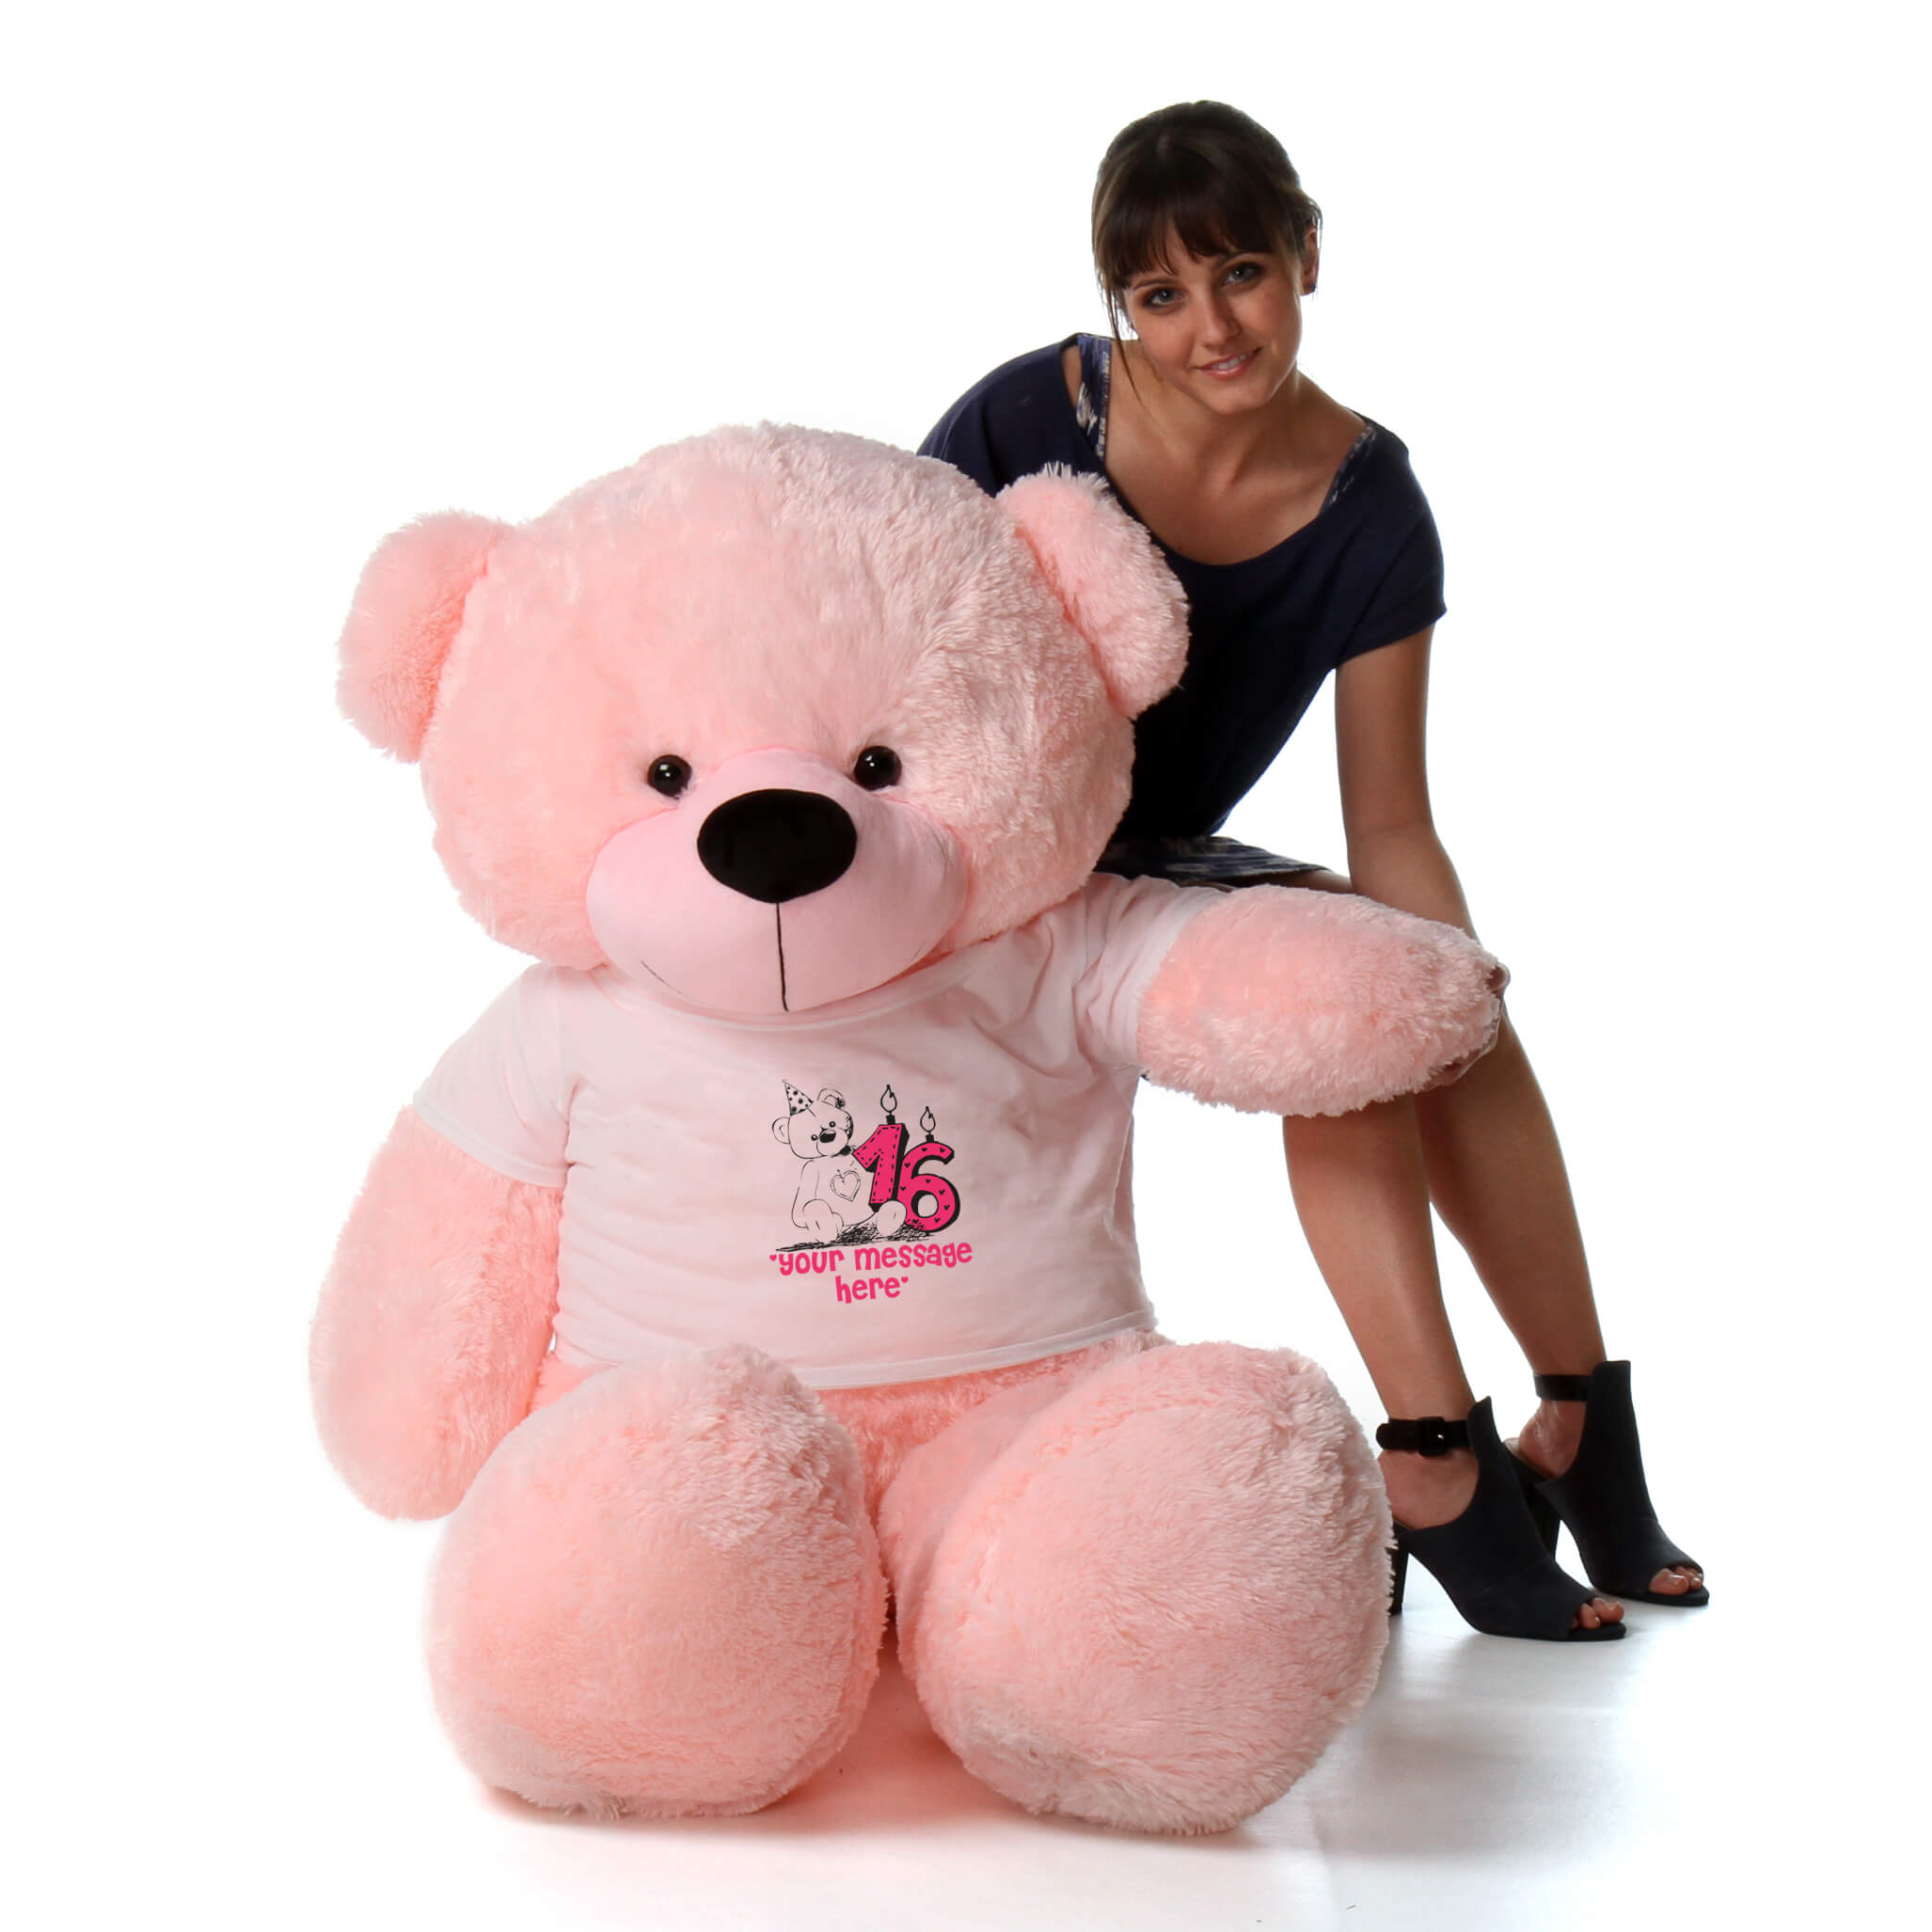 60in-pink-giant-teddy-lady-cuddles-in-happy-birthday-your-message-here-shirt.jpg